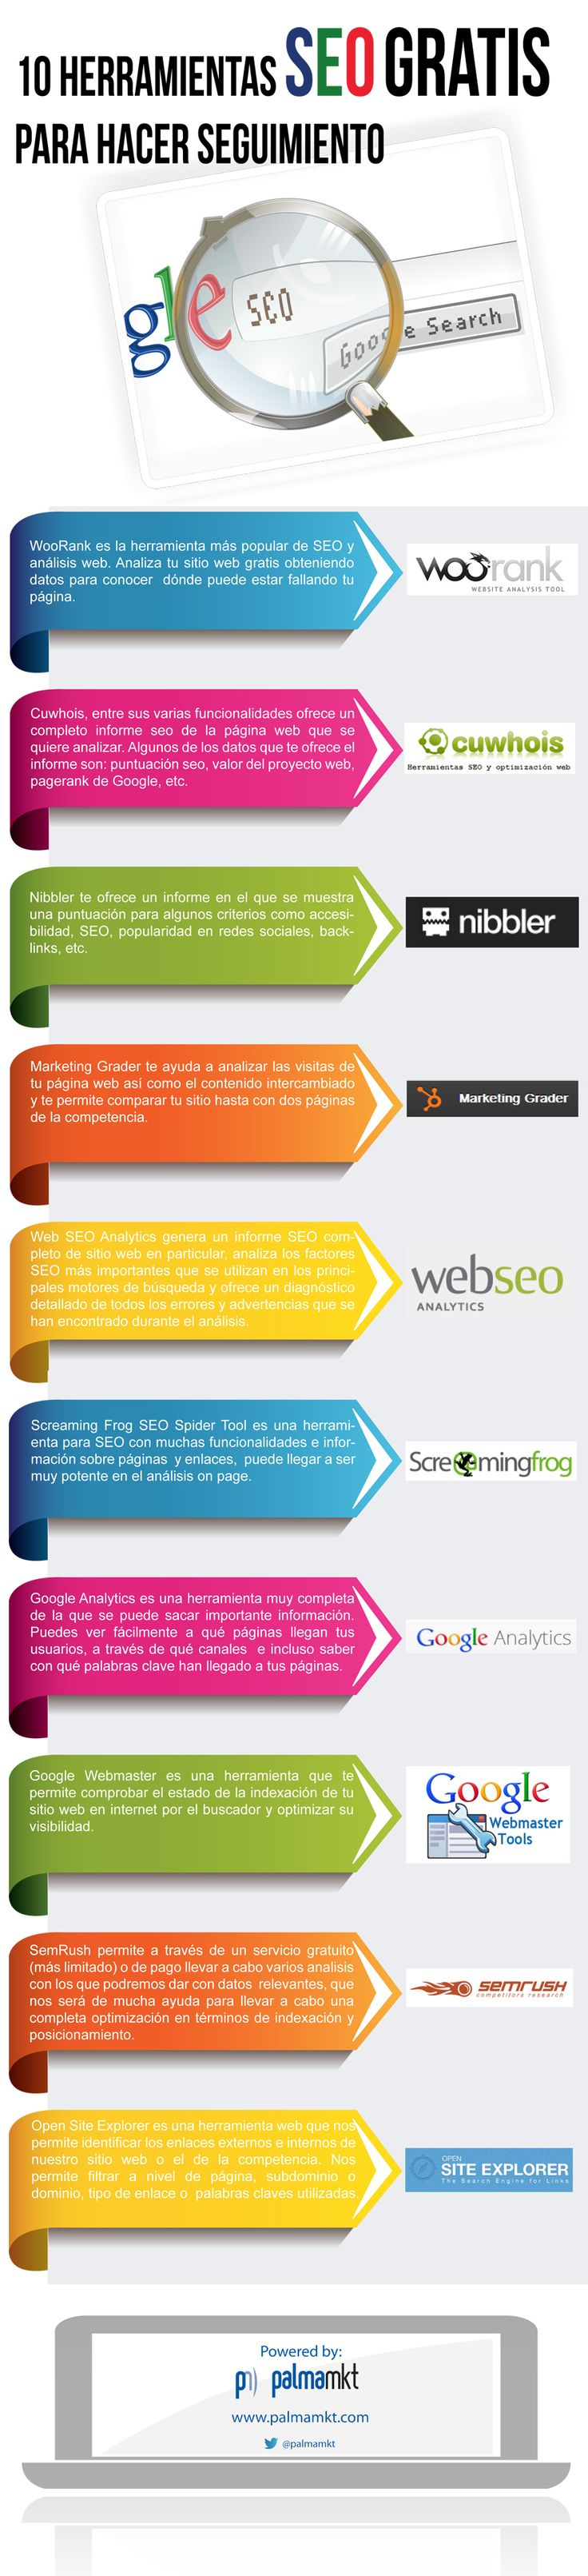 10 herramientas para realizar seguimiento SEO gratis. Infografía en español #CommunityManager. (Avoid Nibbler though, it aggressively tracks you and drives robot traffic to your website long after the analysis)